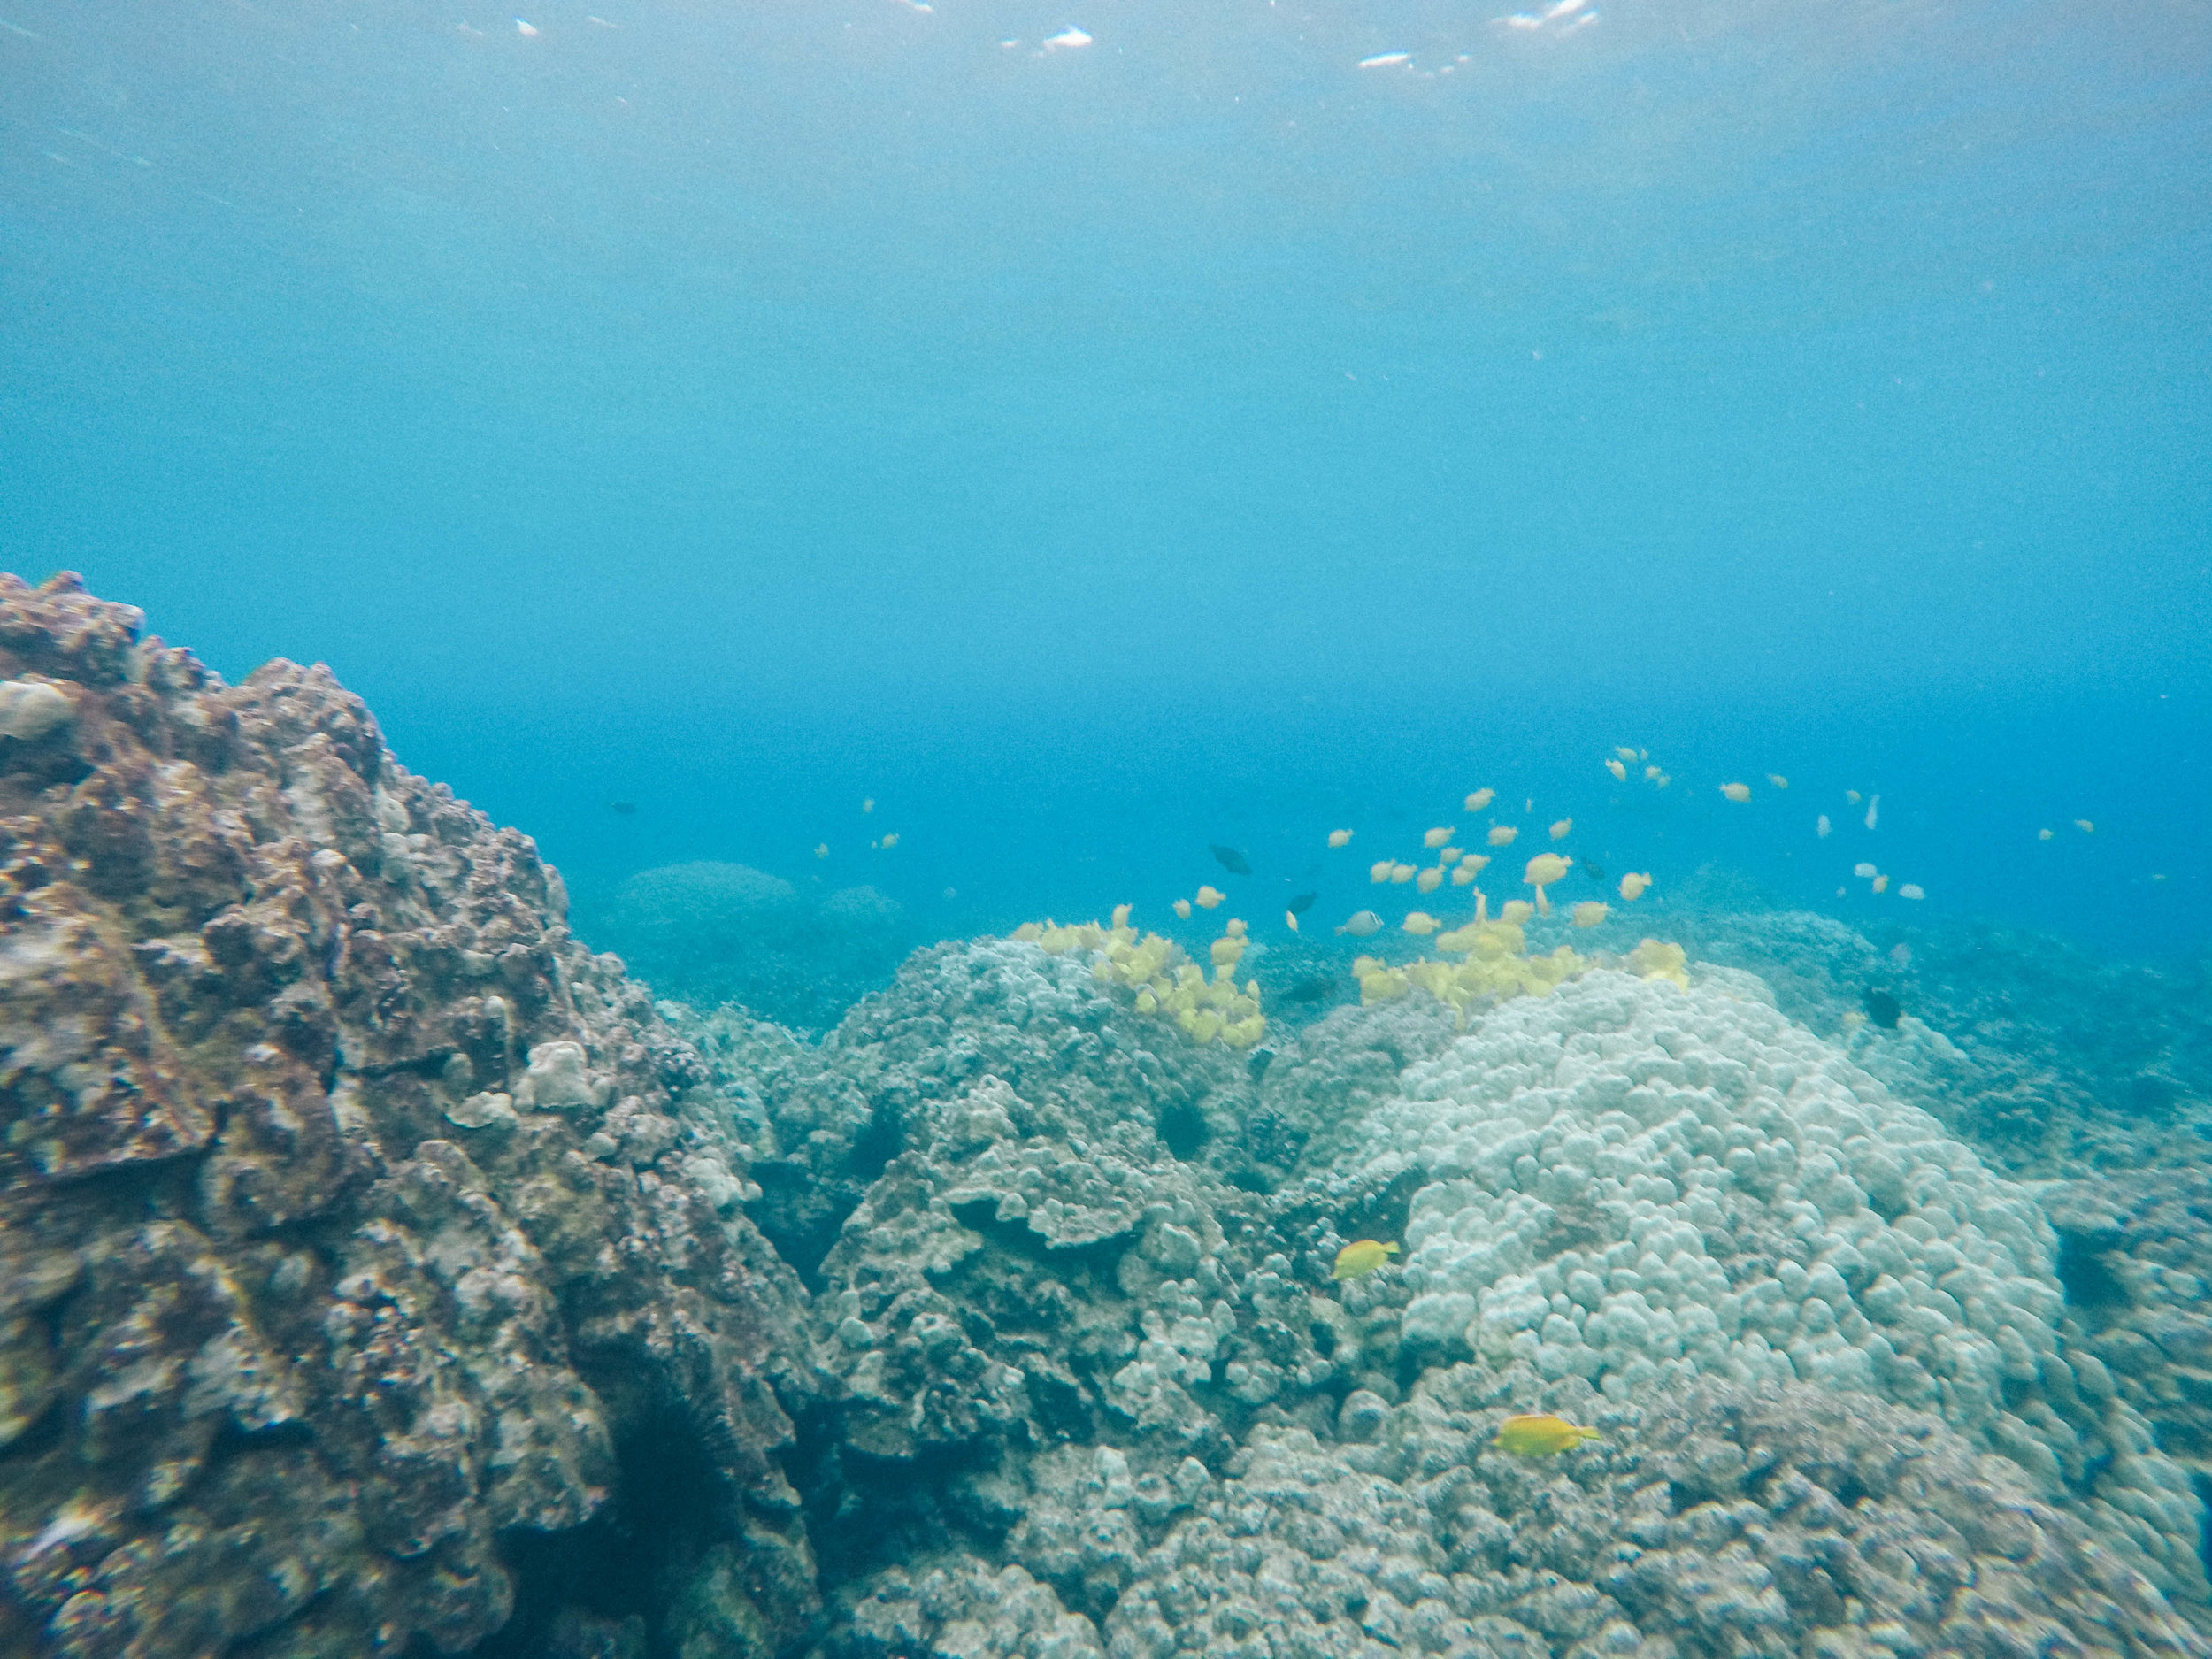 Knowing: Coral Reefs + SaltWaterVibes